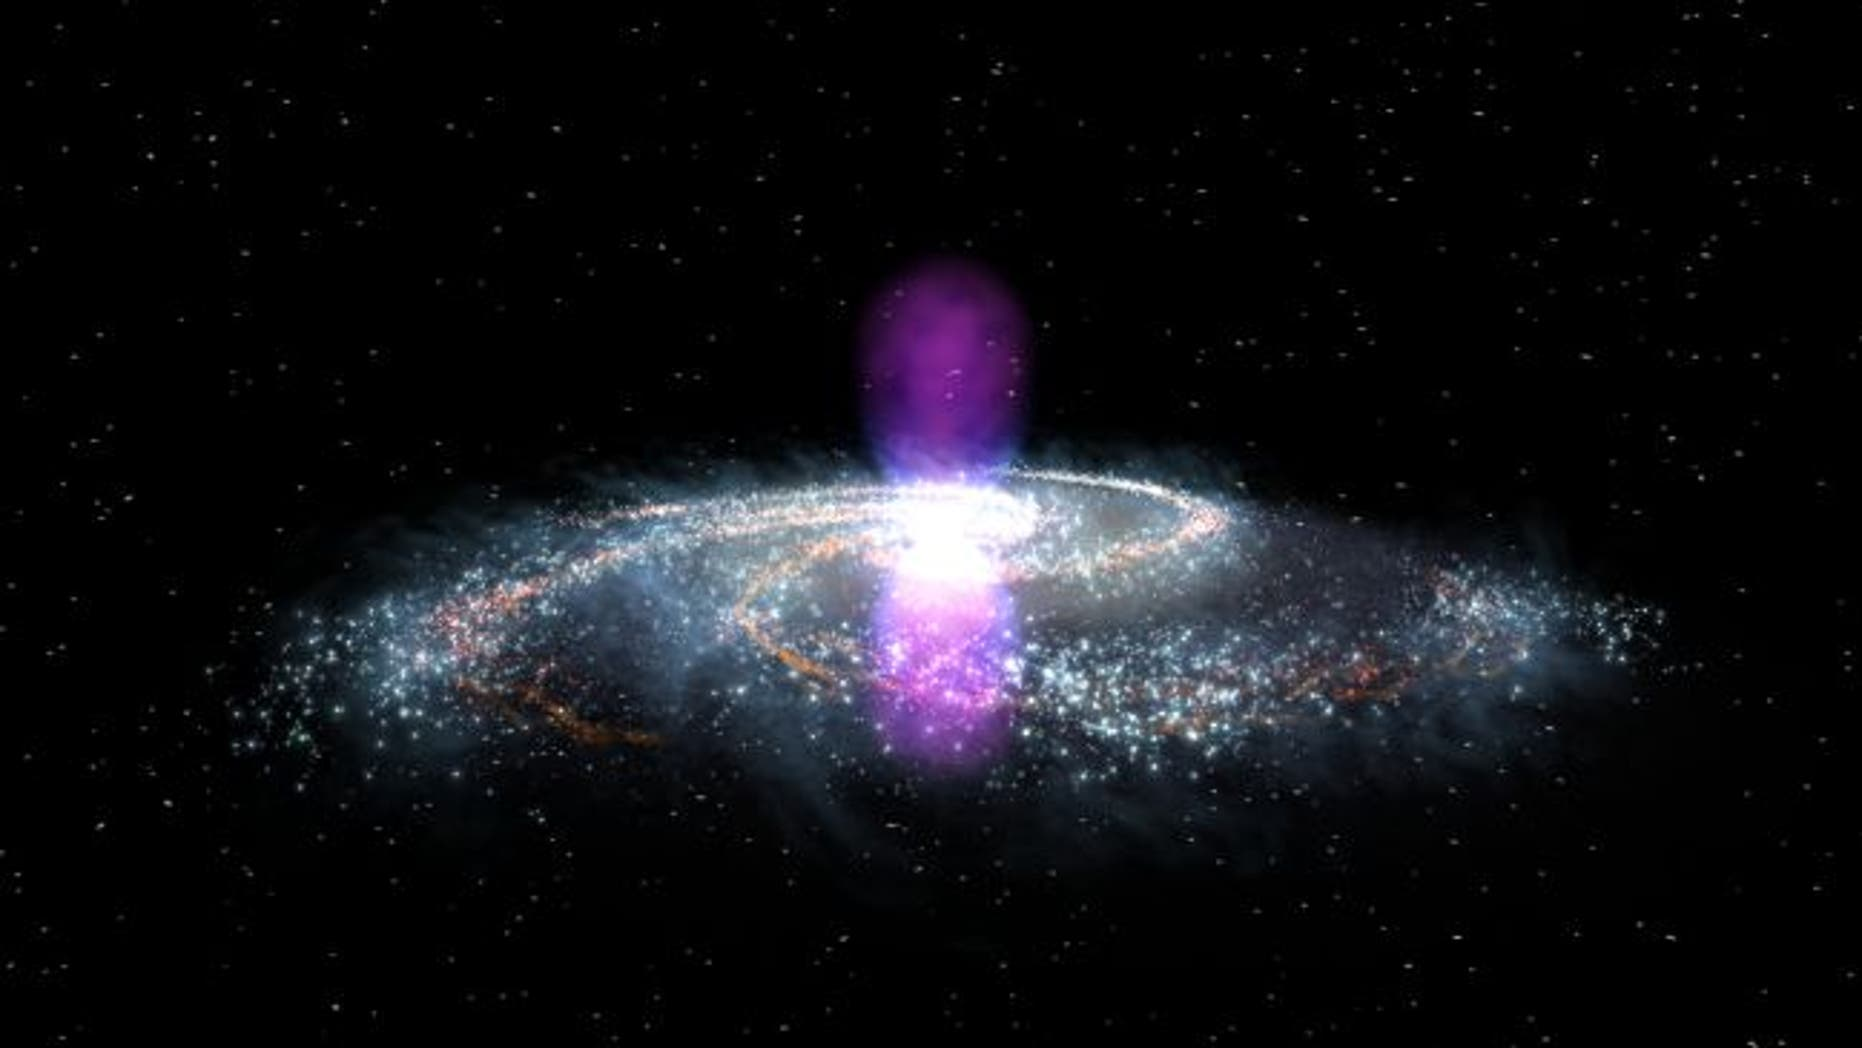 The Fermi bubbles, illustrated in gamma-ray light here, tower over the Milky Way and speak to a gargantuan cosmic explosion from the center of our galaxy. New research attempts to pinpoint that explosion's date. (Credit: NASA Goddard)